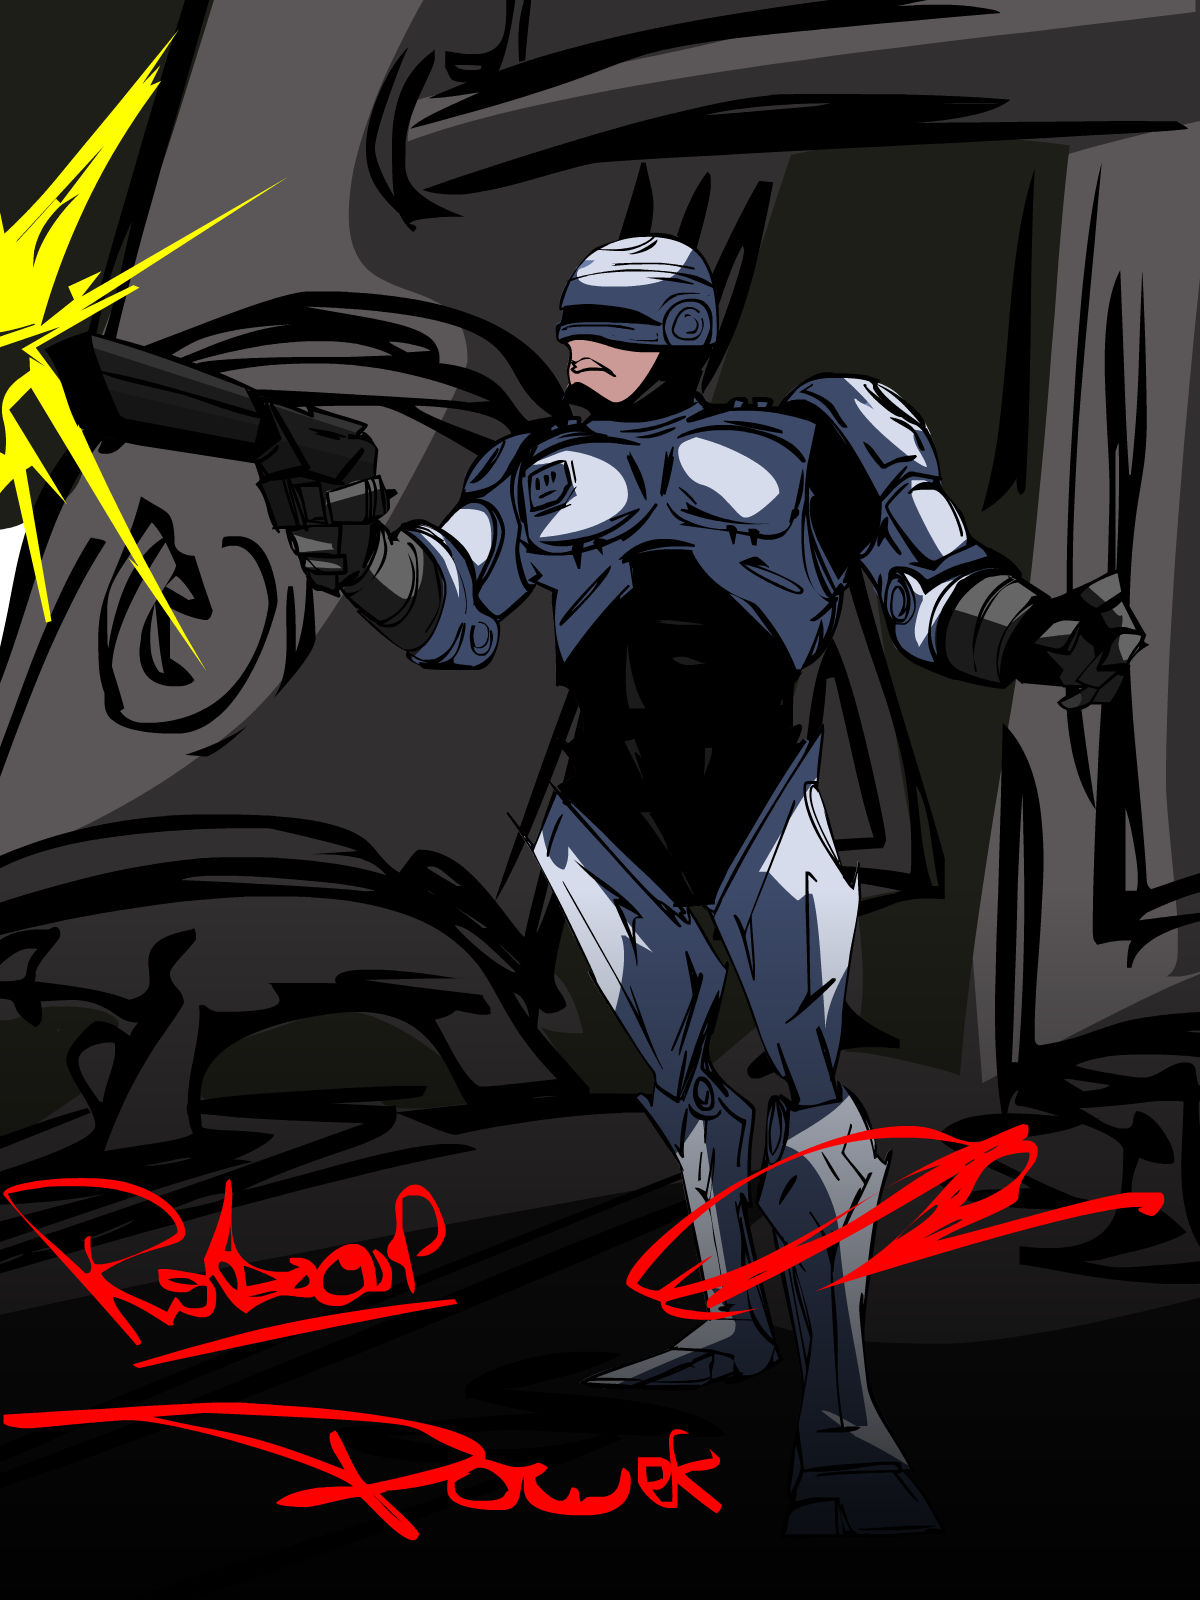 Alll that power ROBOCOP!!!